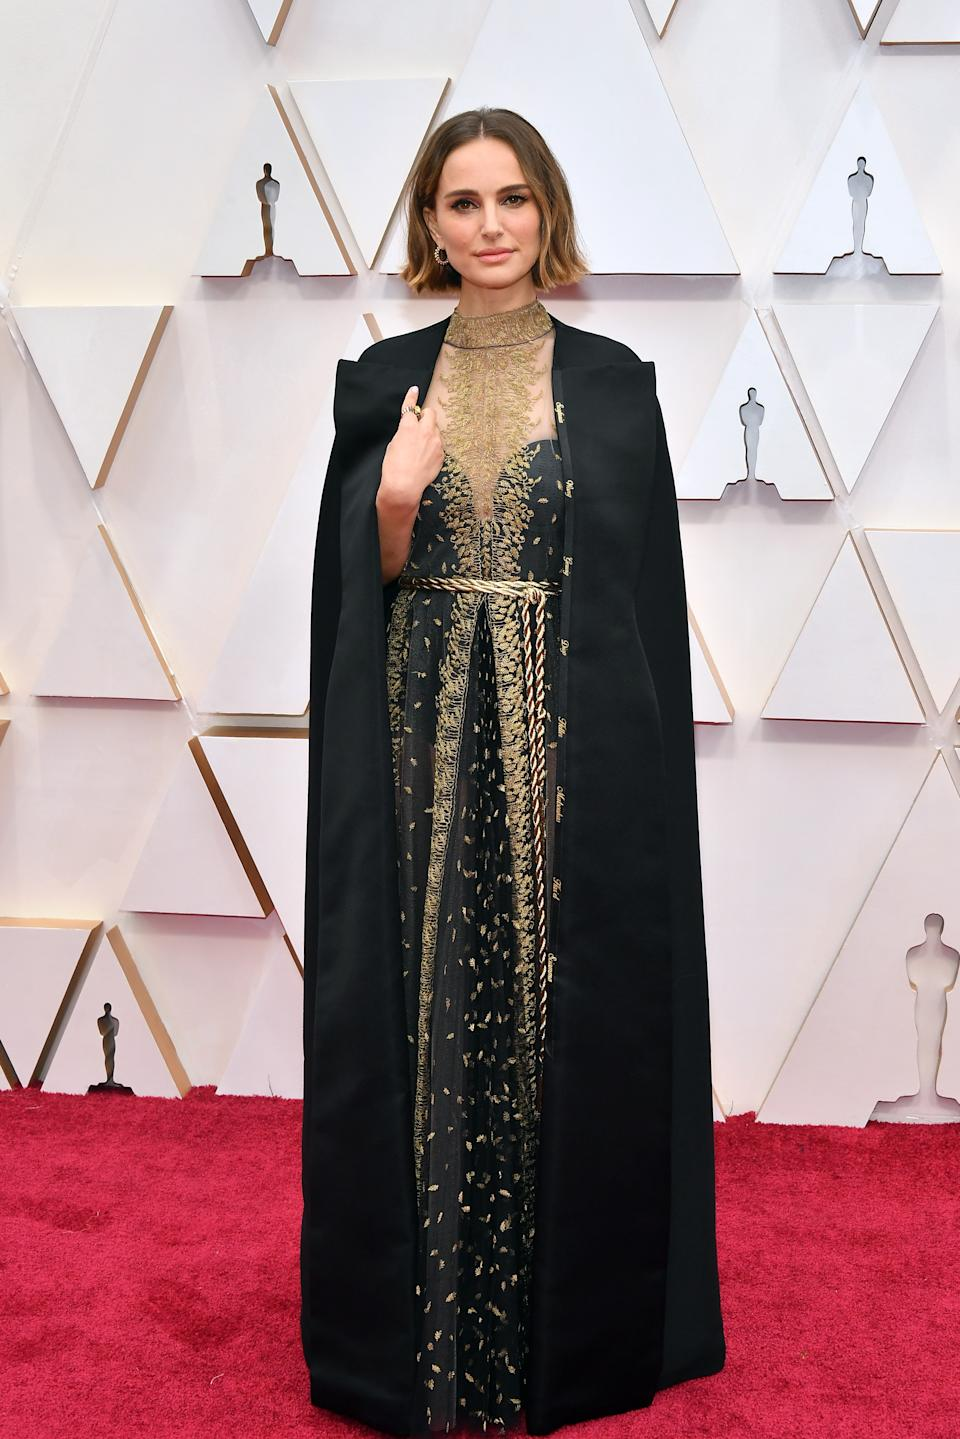 """The """"Black Swan"""" Oscar winner wore a caped gown by Christian Dior. Portman is set to serve as a presenter at this year's ceremony alongside actor Timothée Chalamet."""